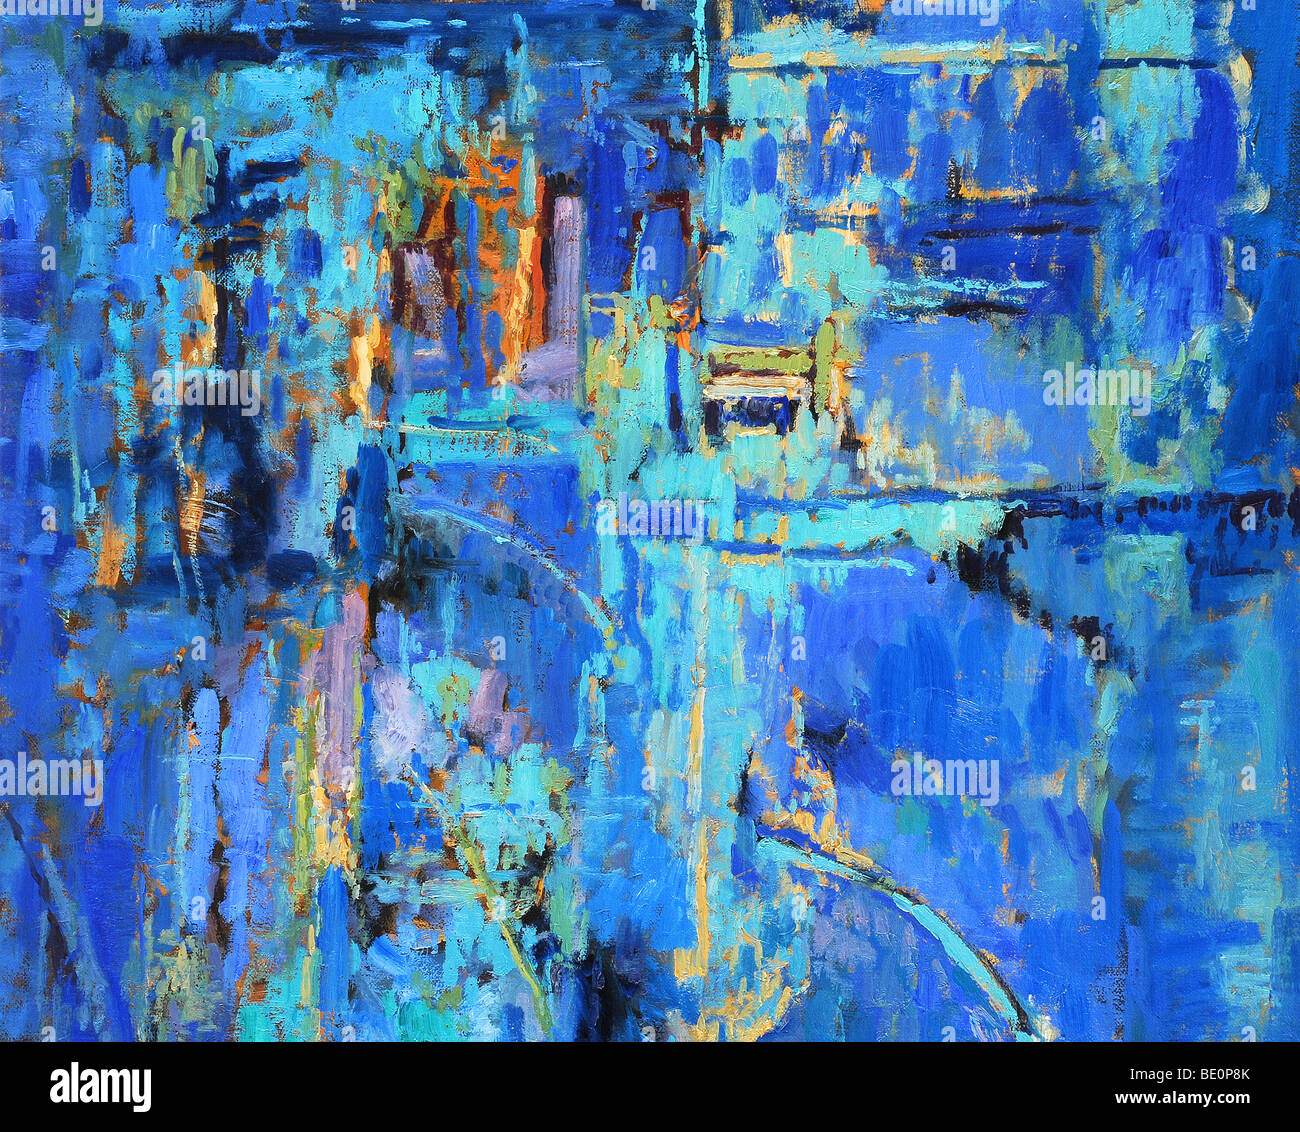 Abstract oil painting with predominant blues - Stock Image